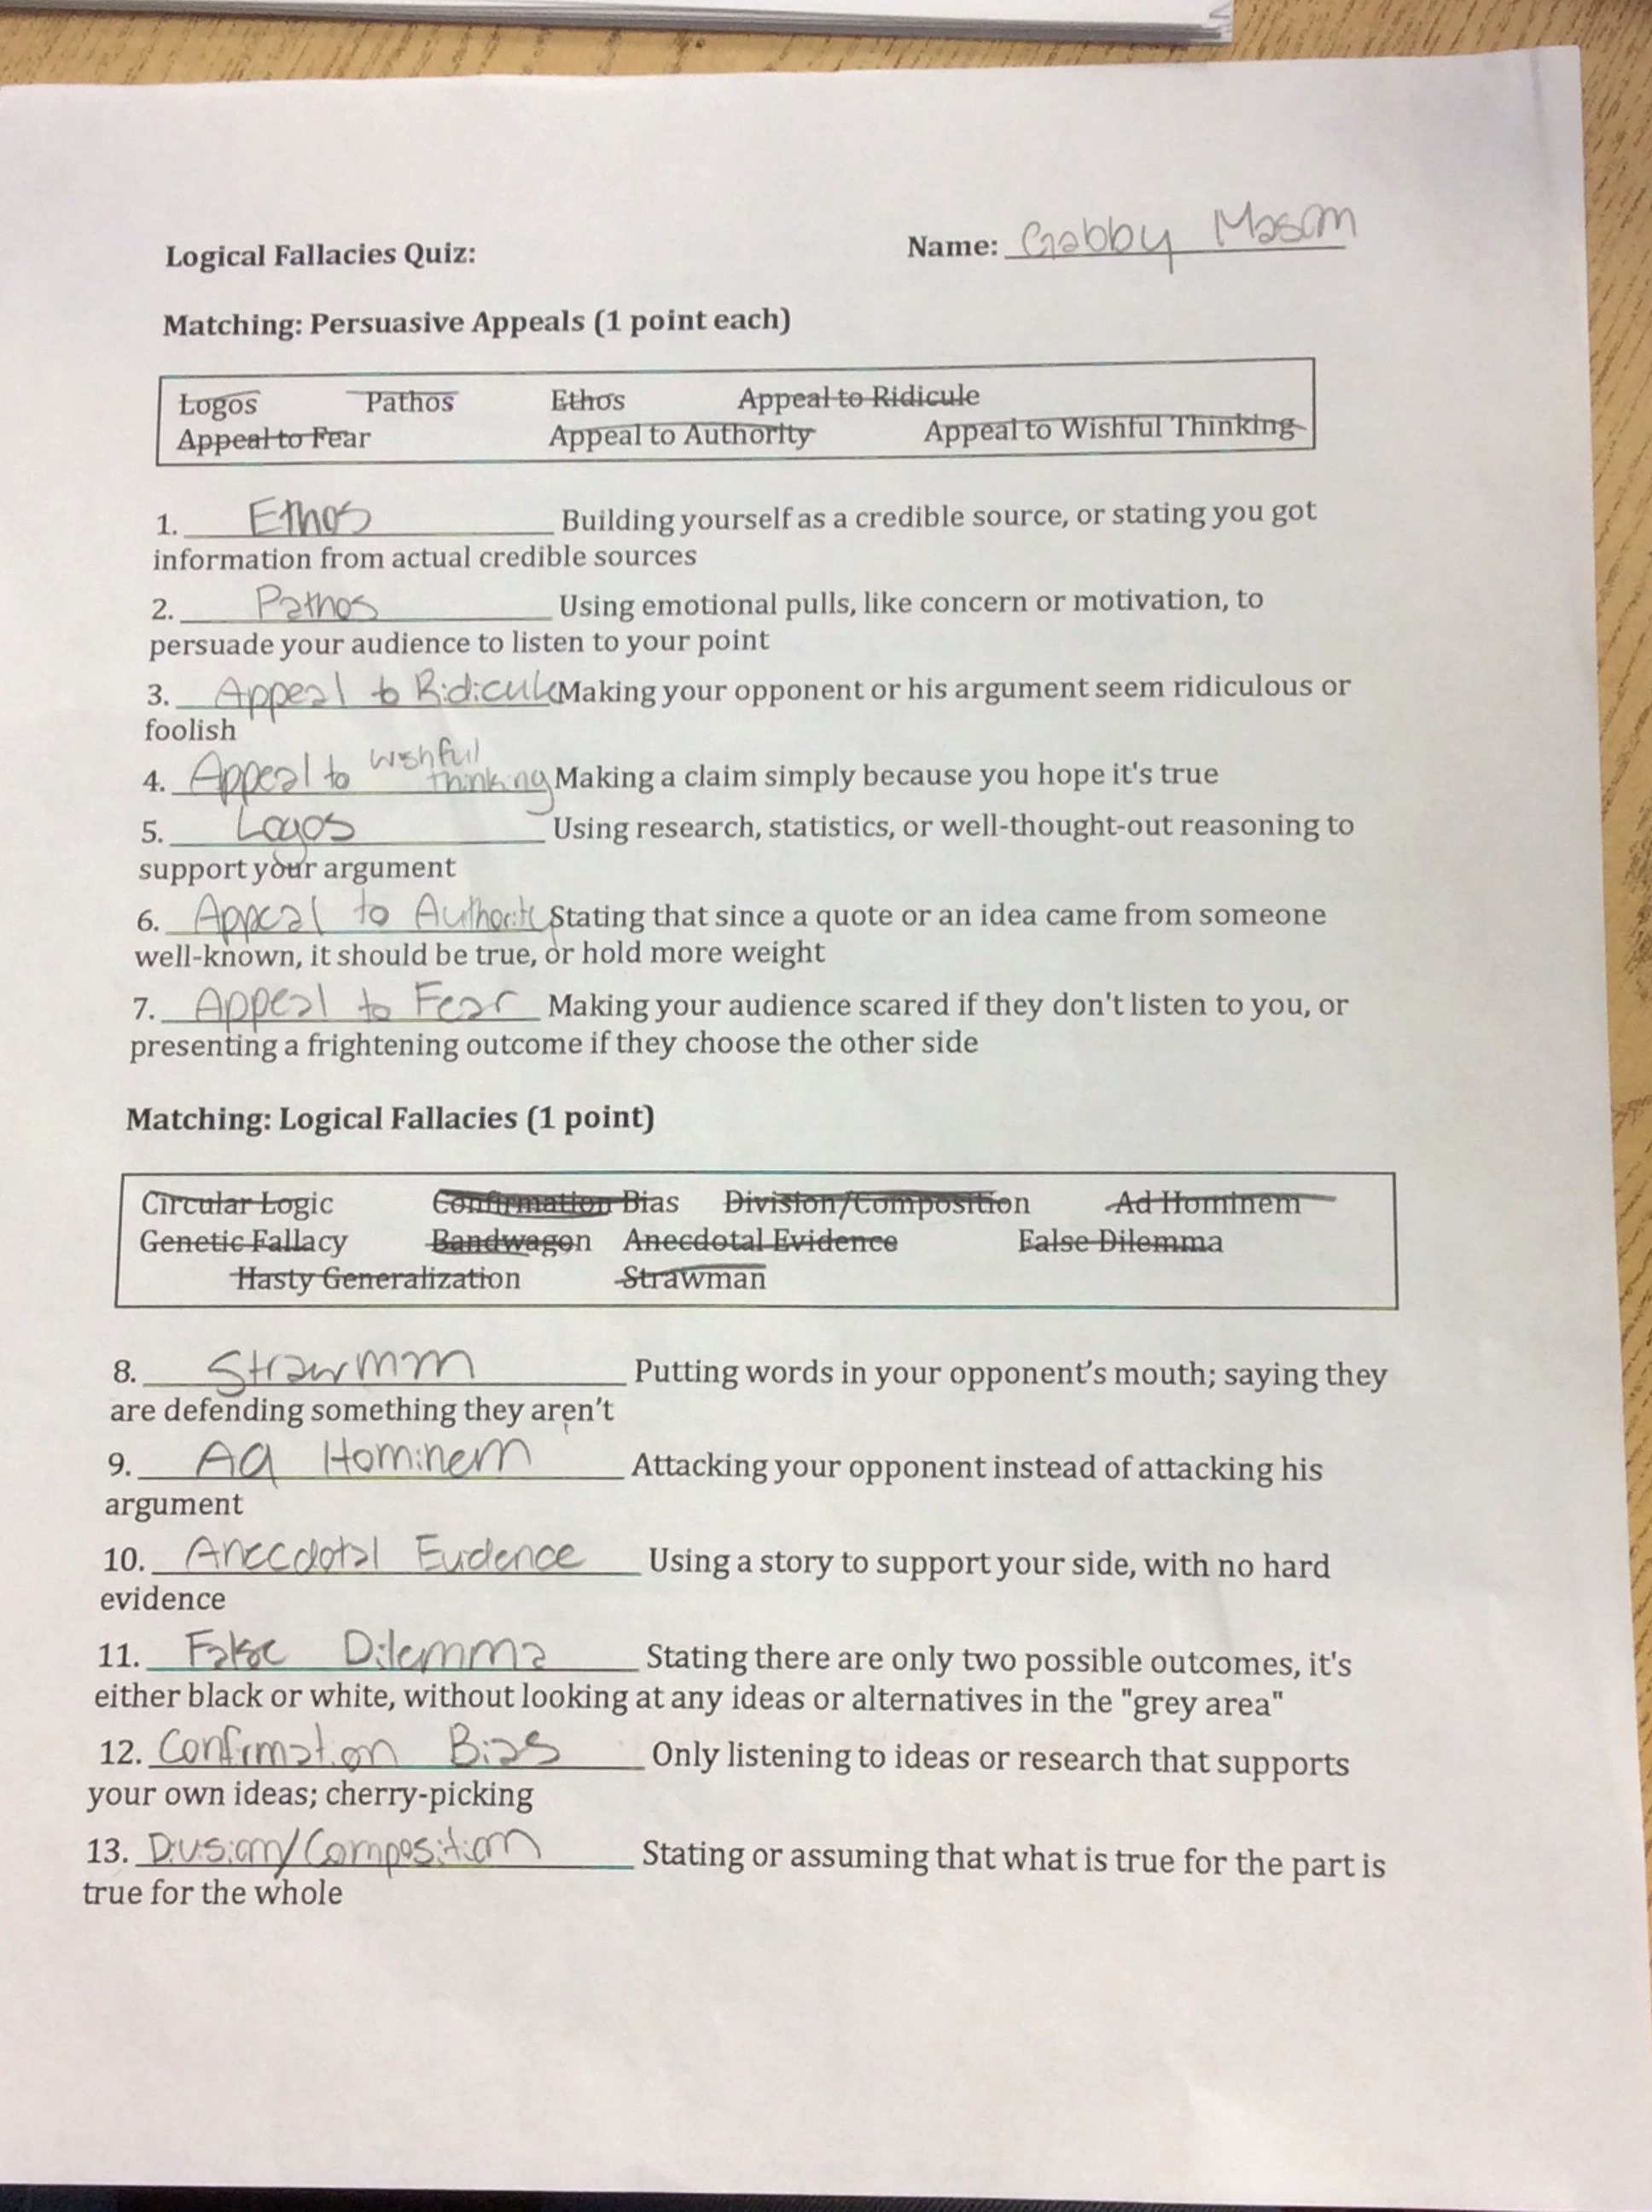 Logical Fallacies Worksheet with Answers Beautiful Logical Fallacies Quiz – Gabby Mason